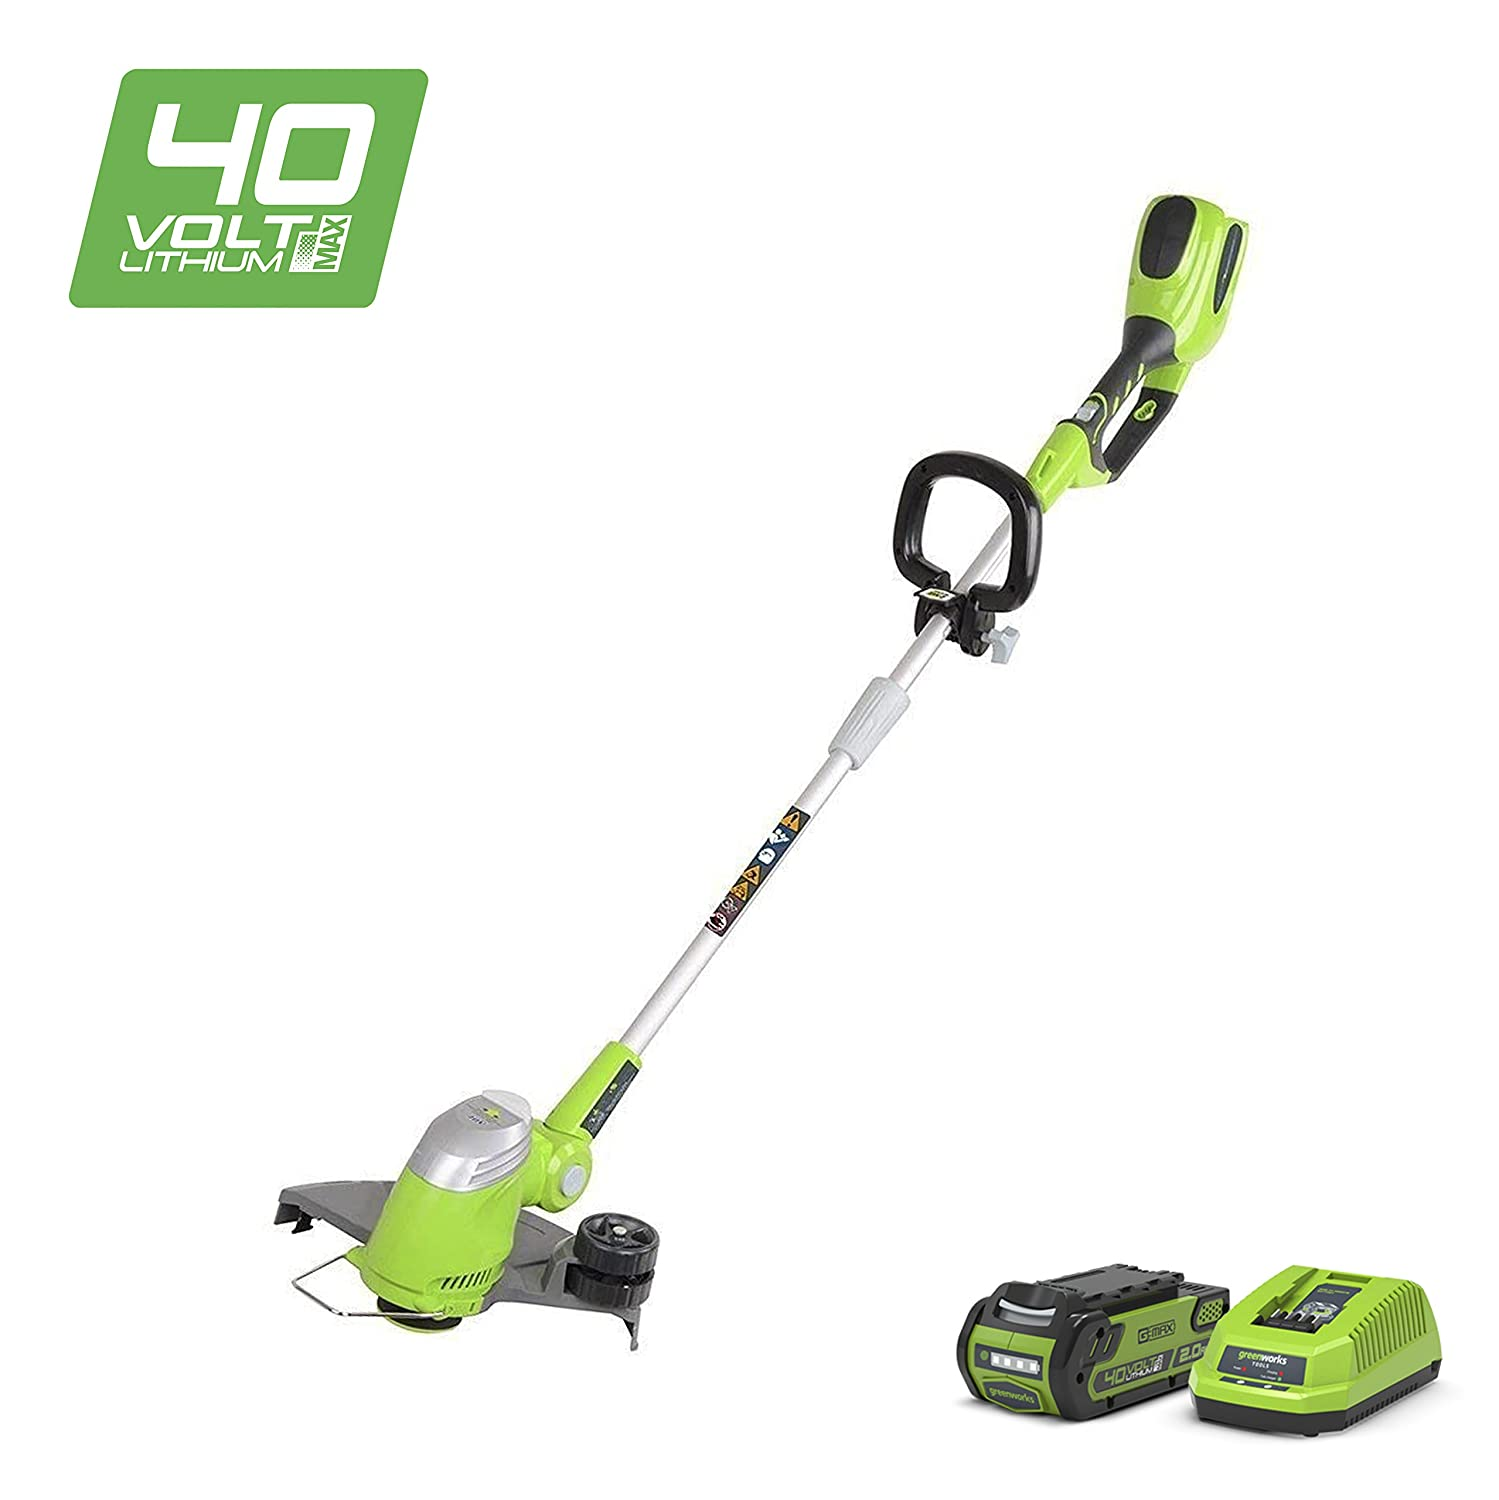 Greenworks Tools 21107 40V Lithium-Ion Cordless Grass Trimmer - 30 cm, green, 21107VA